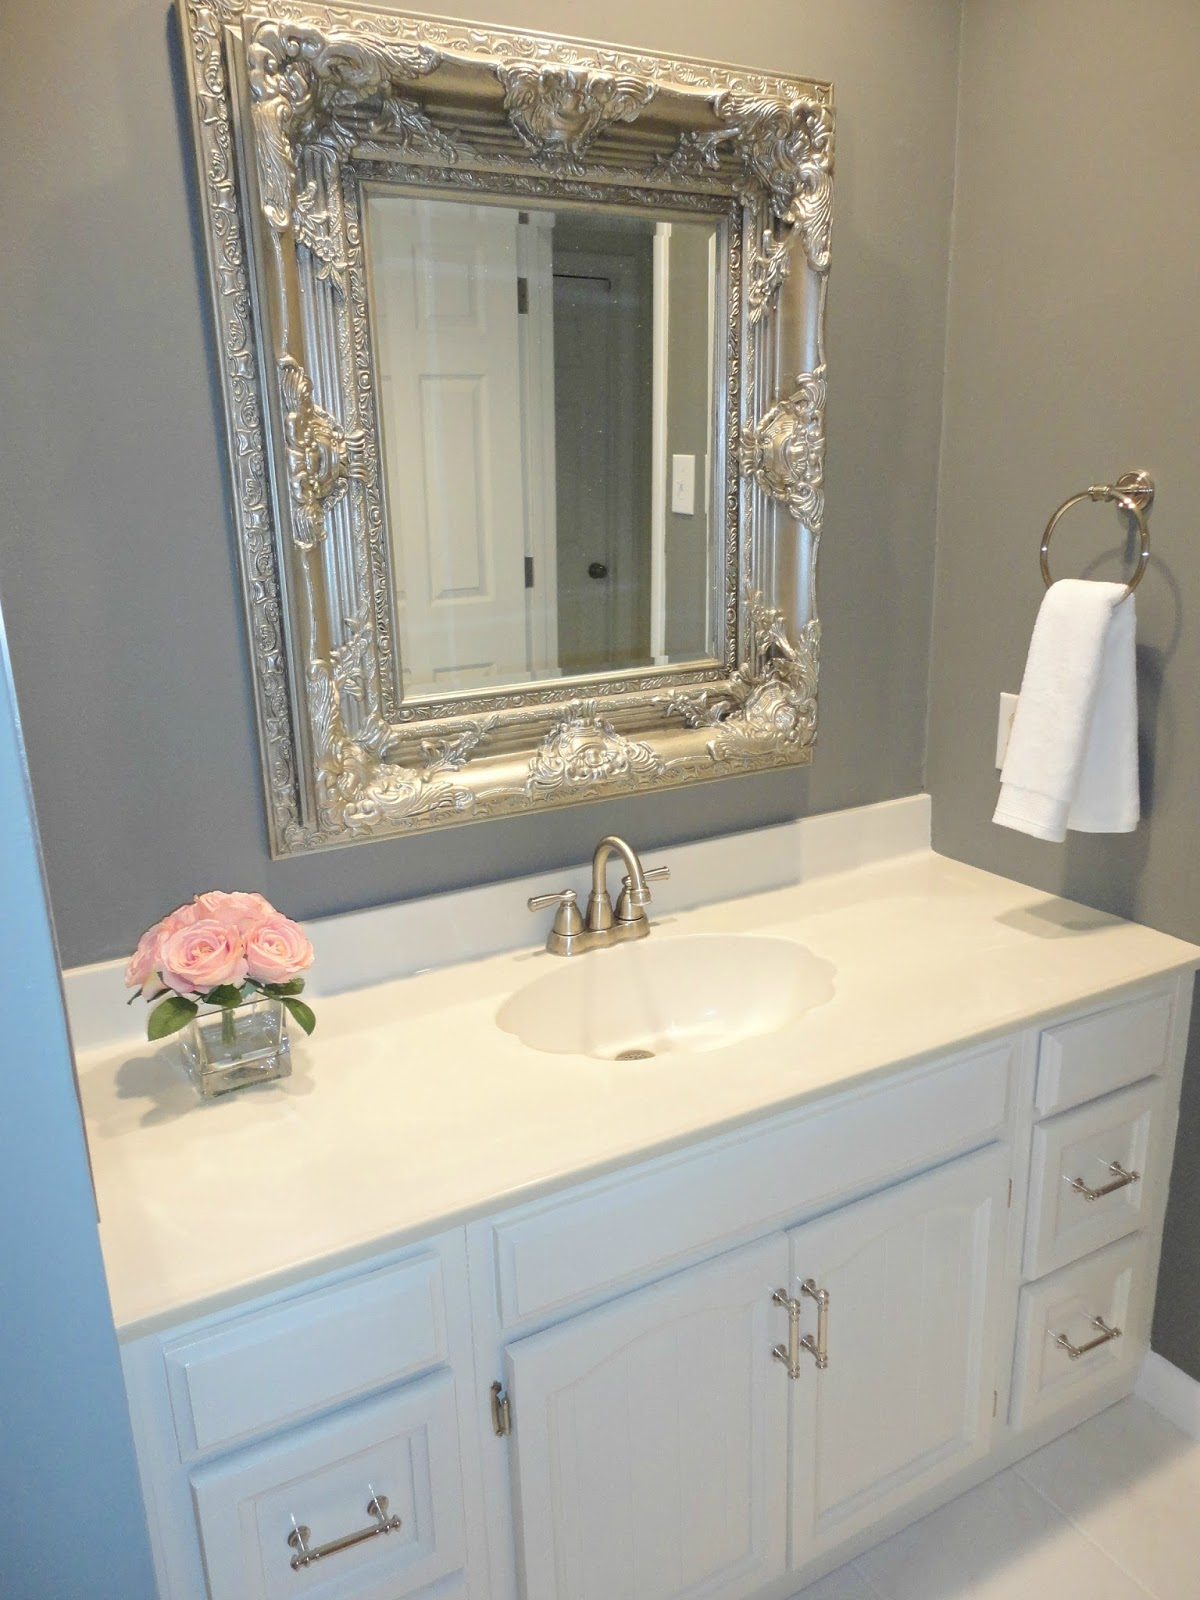 Bathroom Remodel On A Budget livelovediy: diy bathroom remodel on a budget